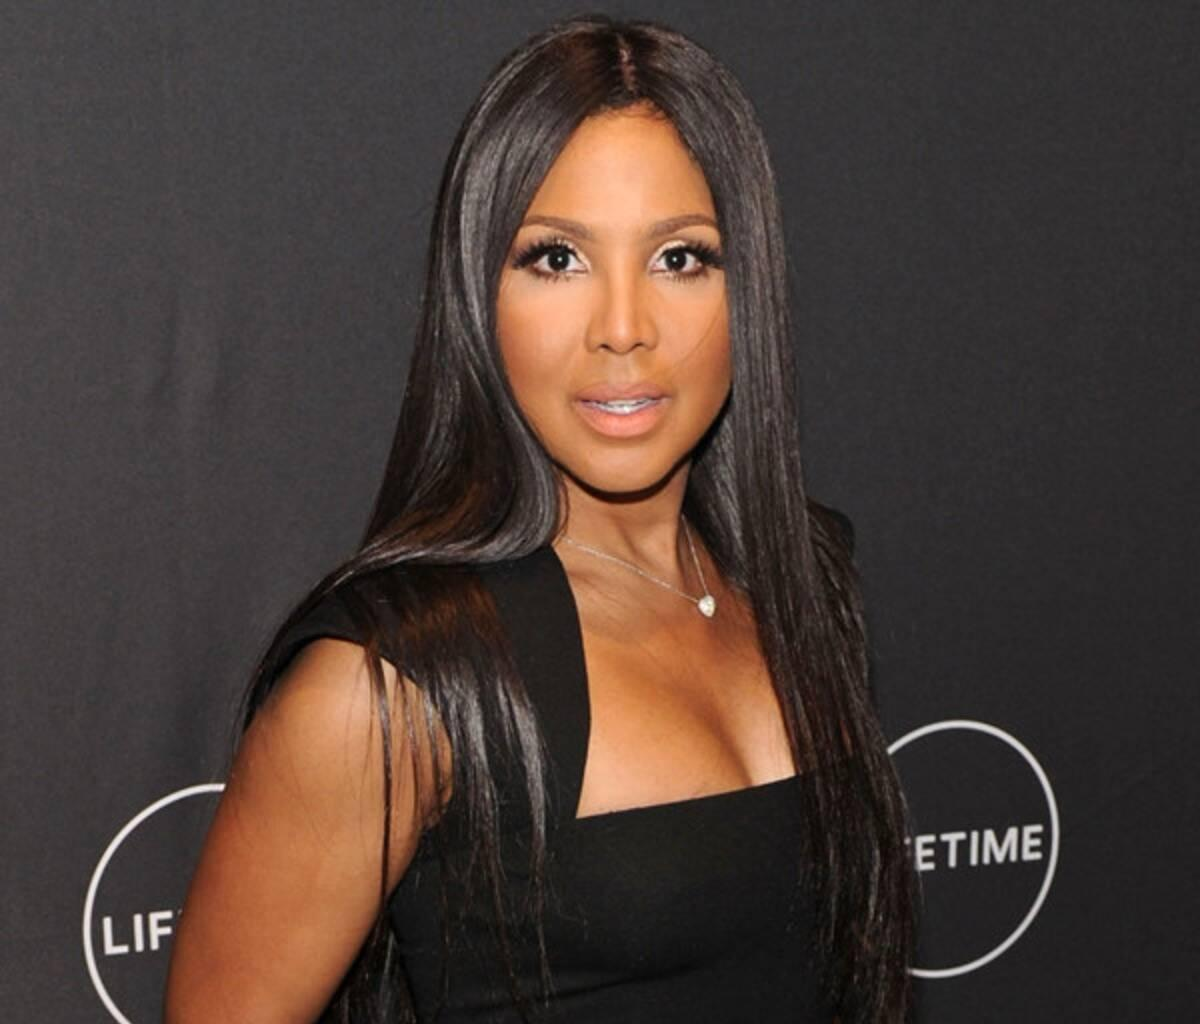 Toni Braxton Shares An Emotional Video Following The Death Of George Floyd